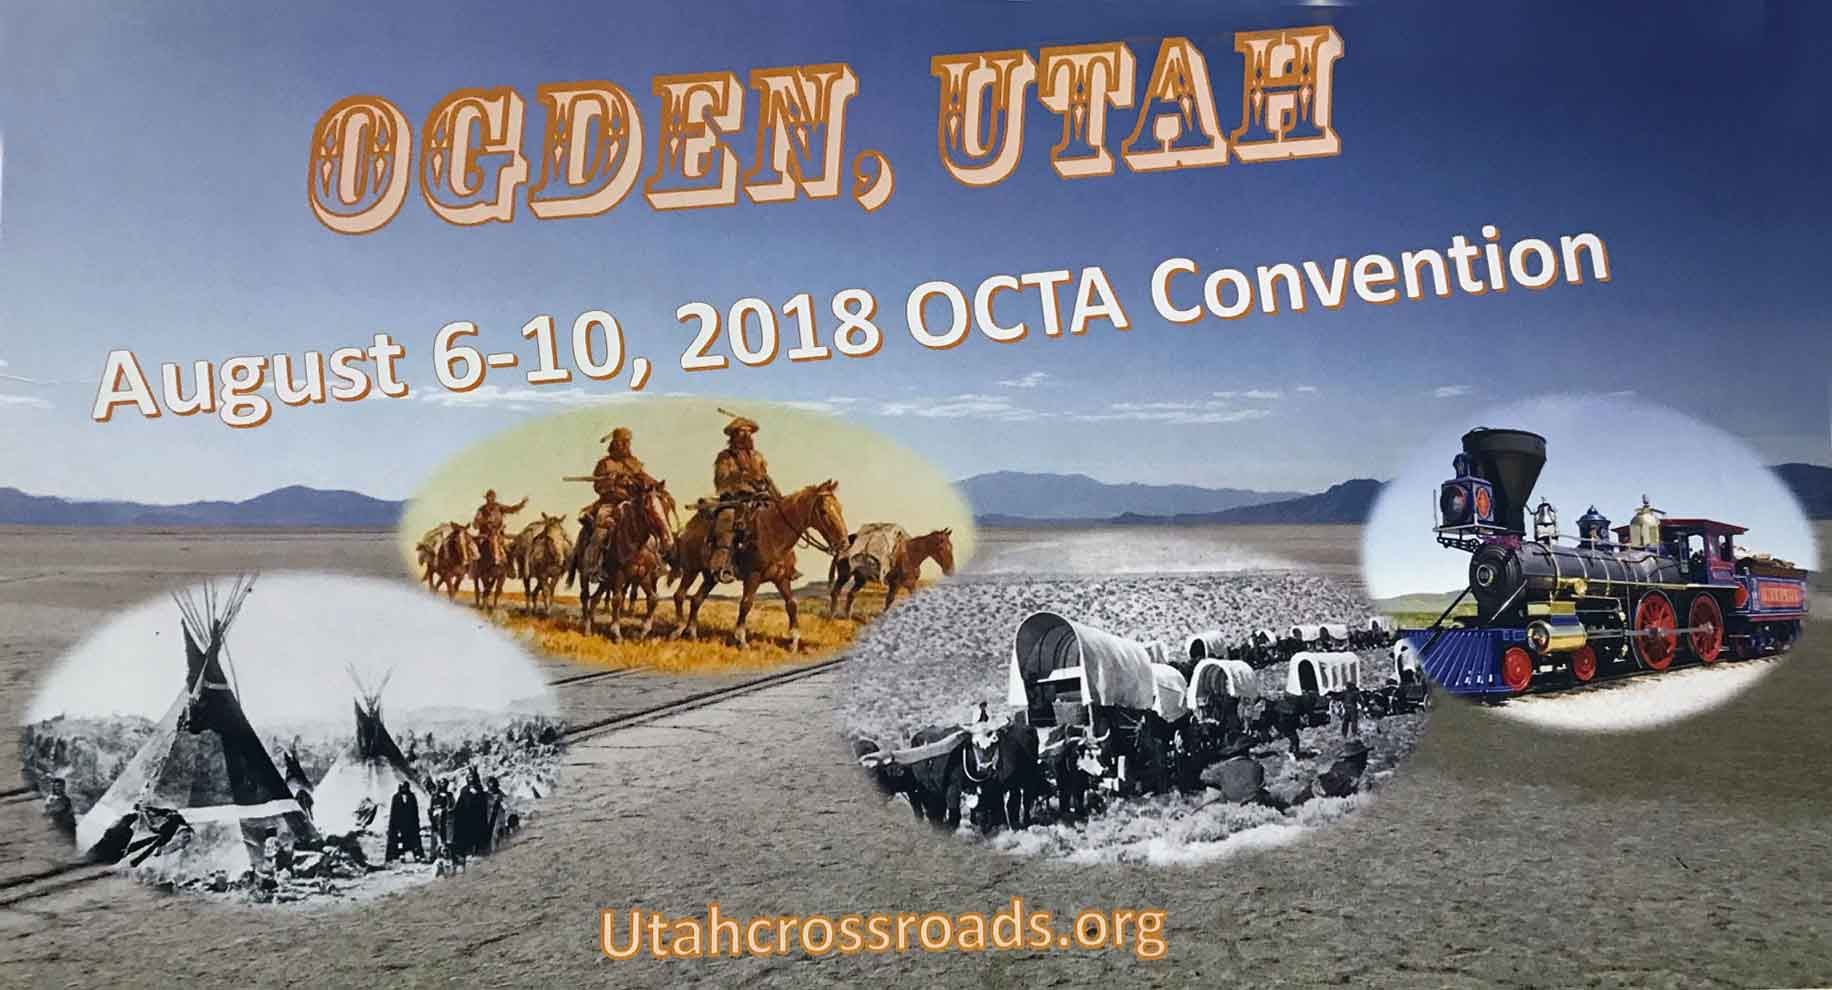 Registrations are open! Book your exciting trip on the trails!  - Discover more about the convention and the many activities that will be available for you and your party at our Convention page.  We look forward to your arrival!